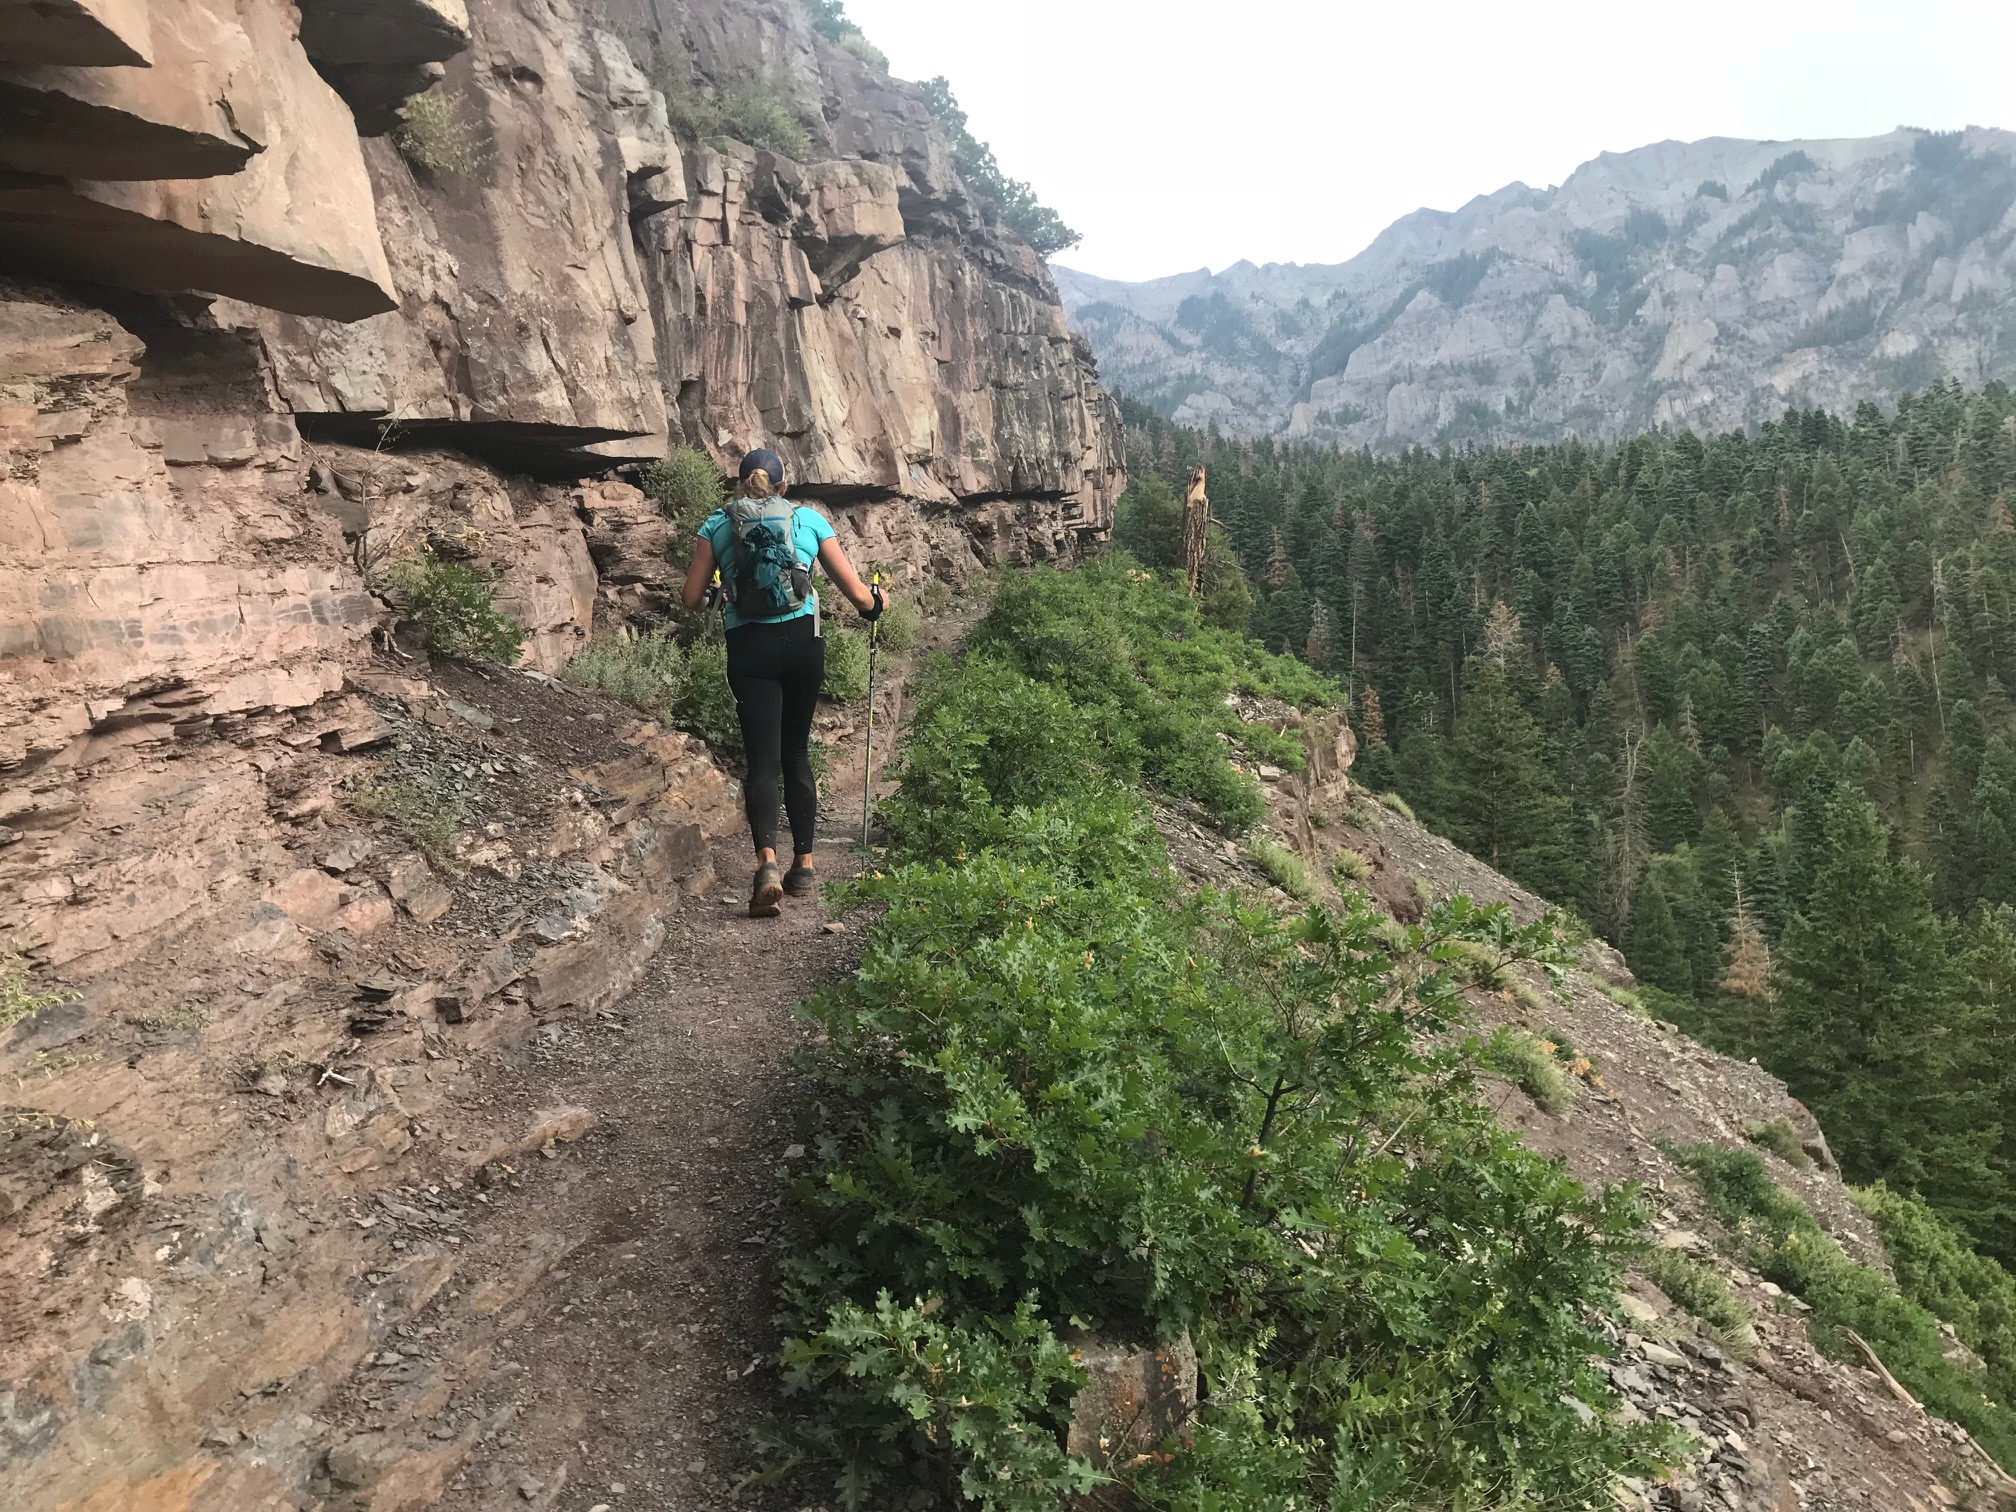 Power-hiking is the new running